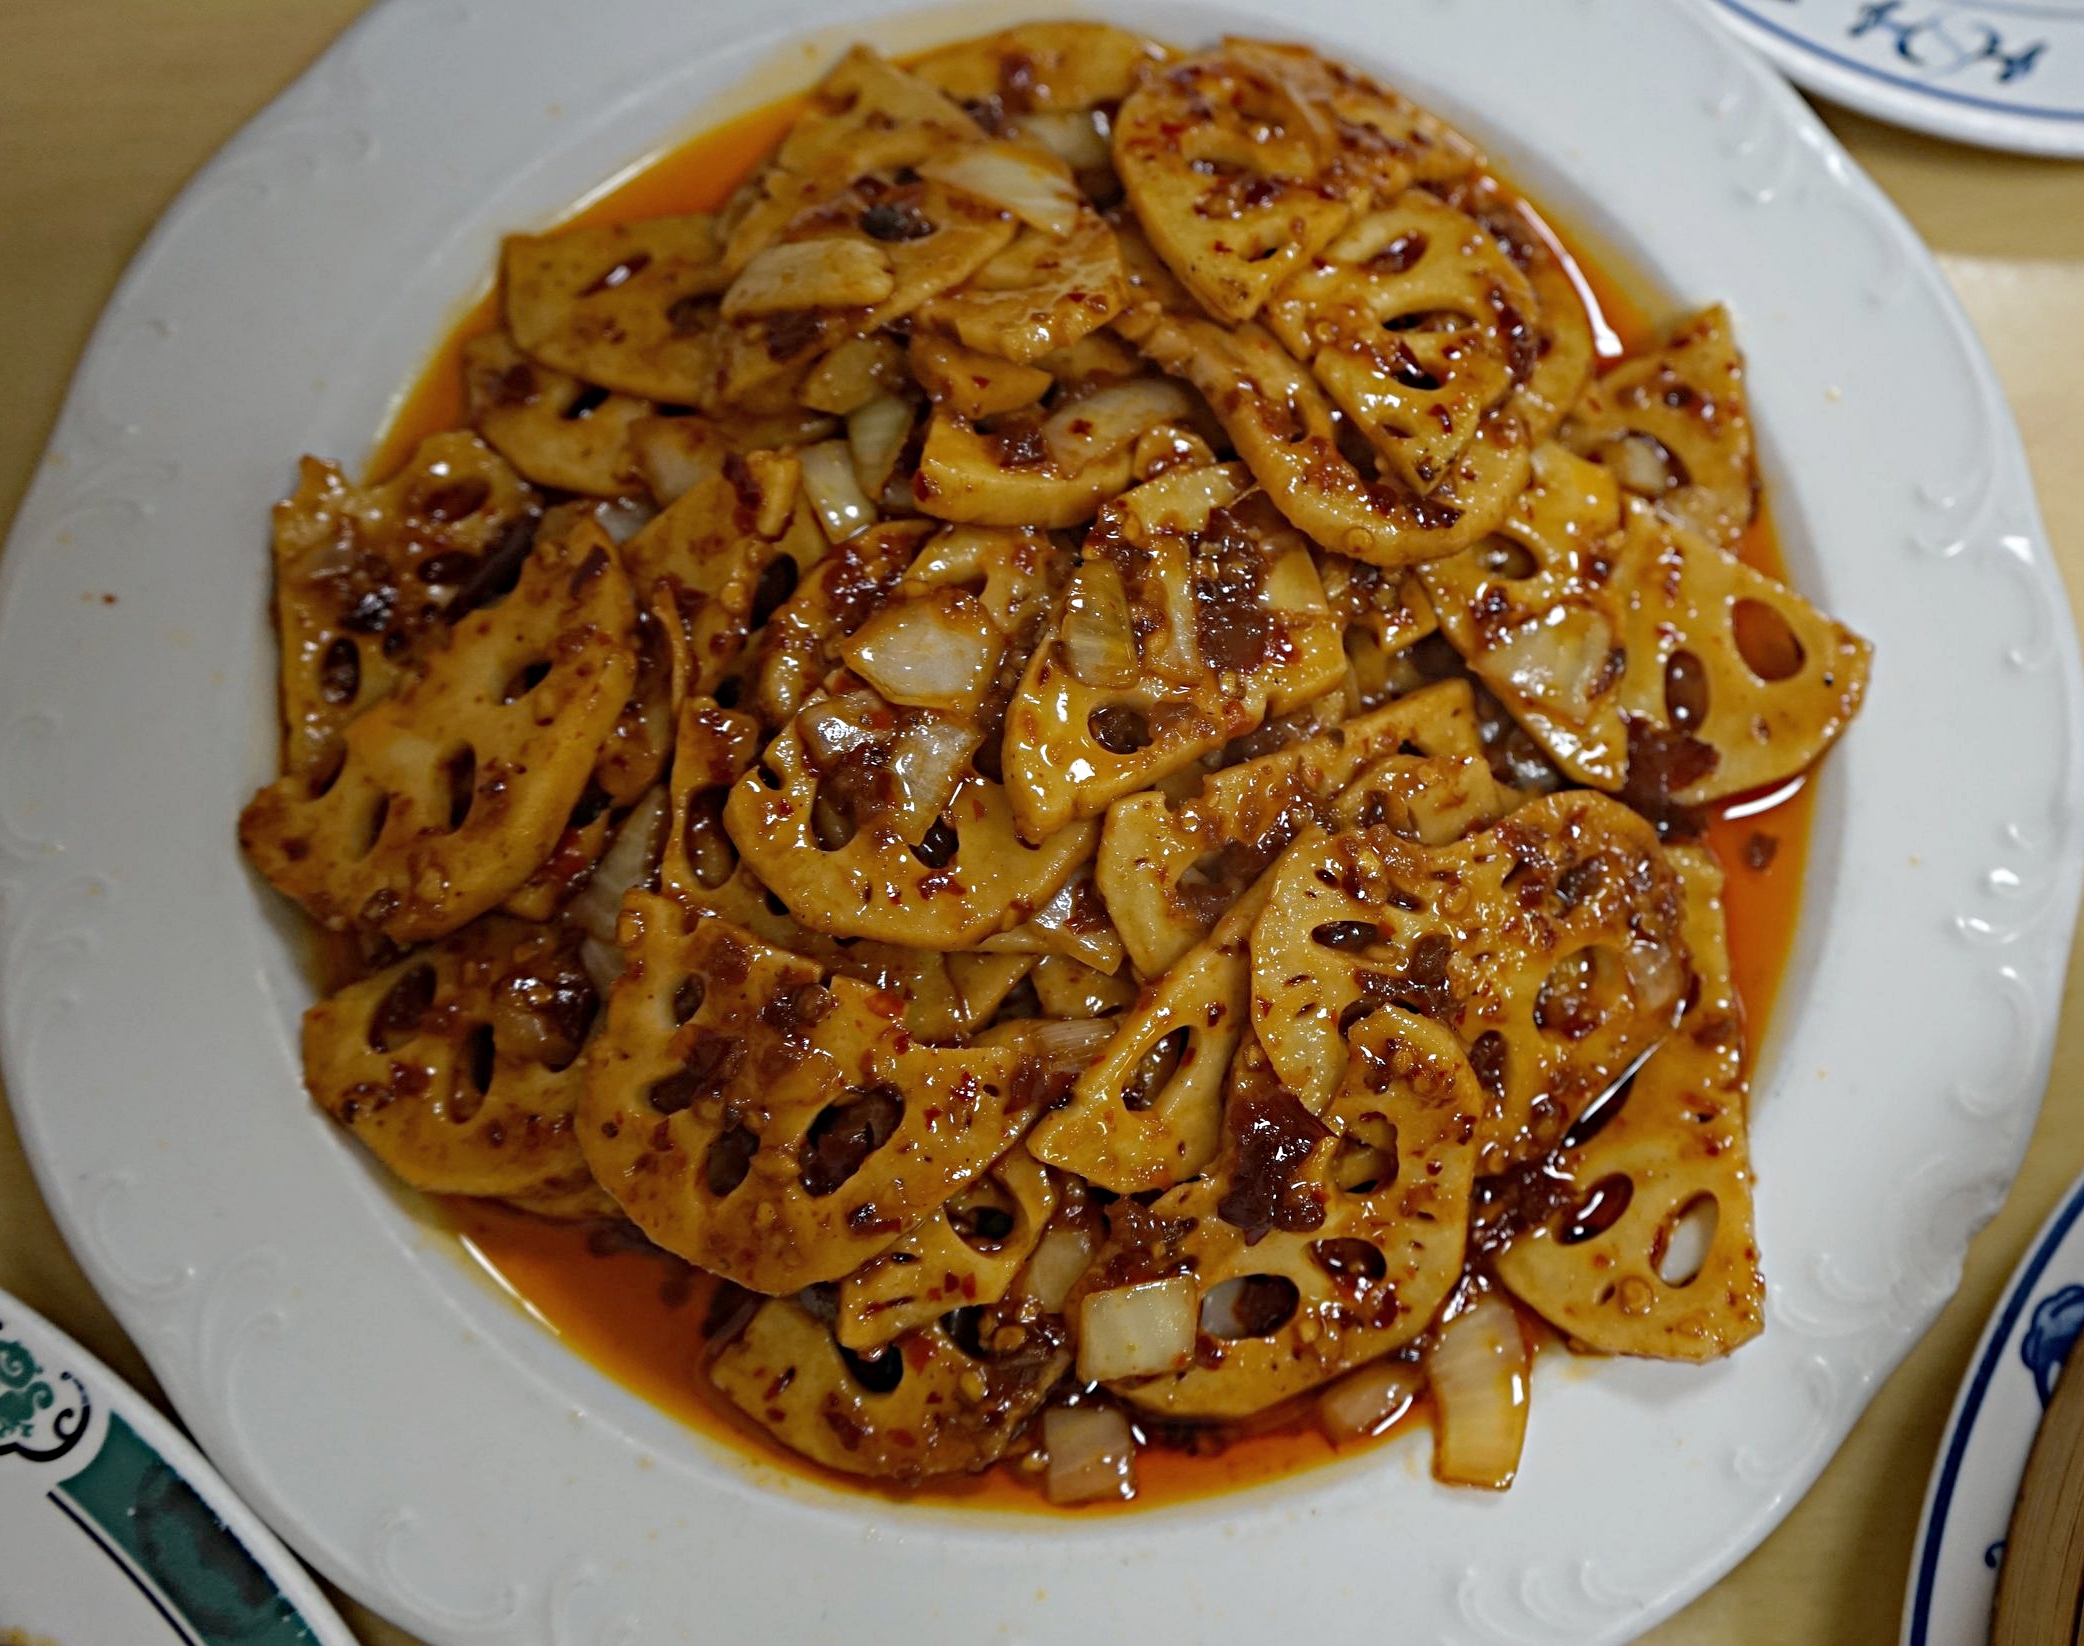 I'm not a huge fan of lotus root, but marinated in chili sauce, and tossed with Sautéed onions will make anyone a fan.